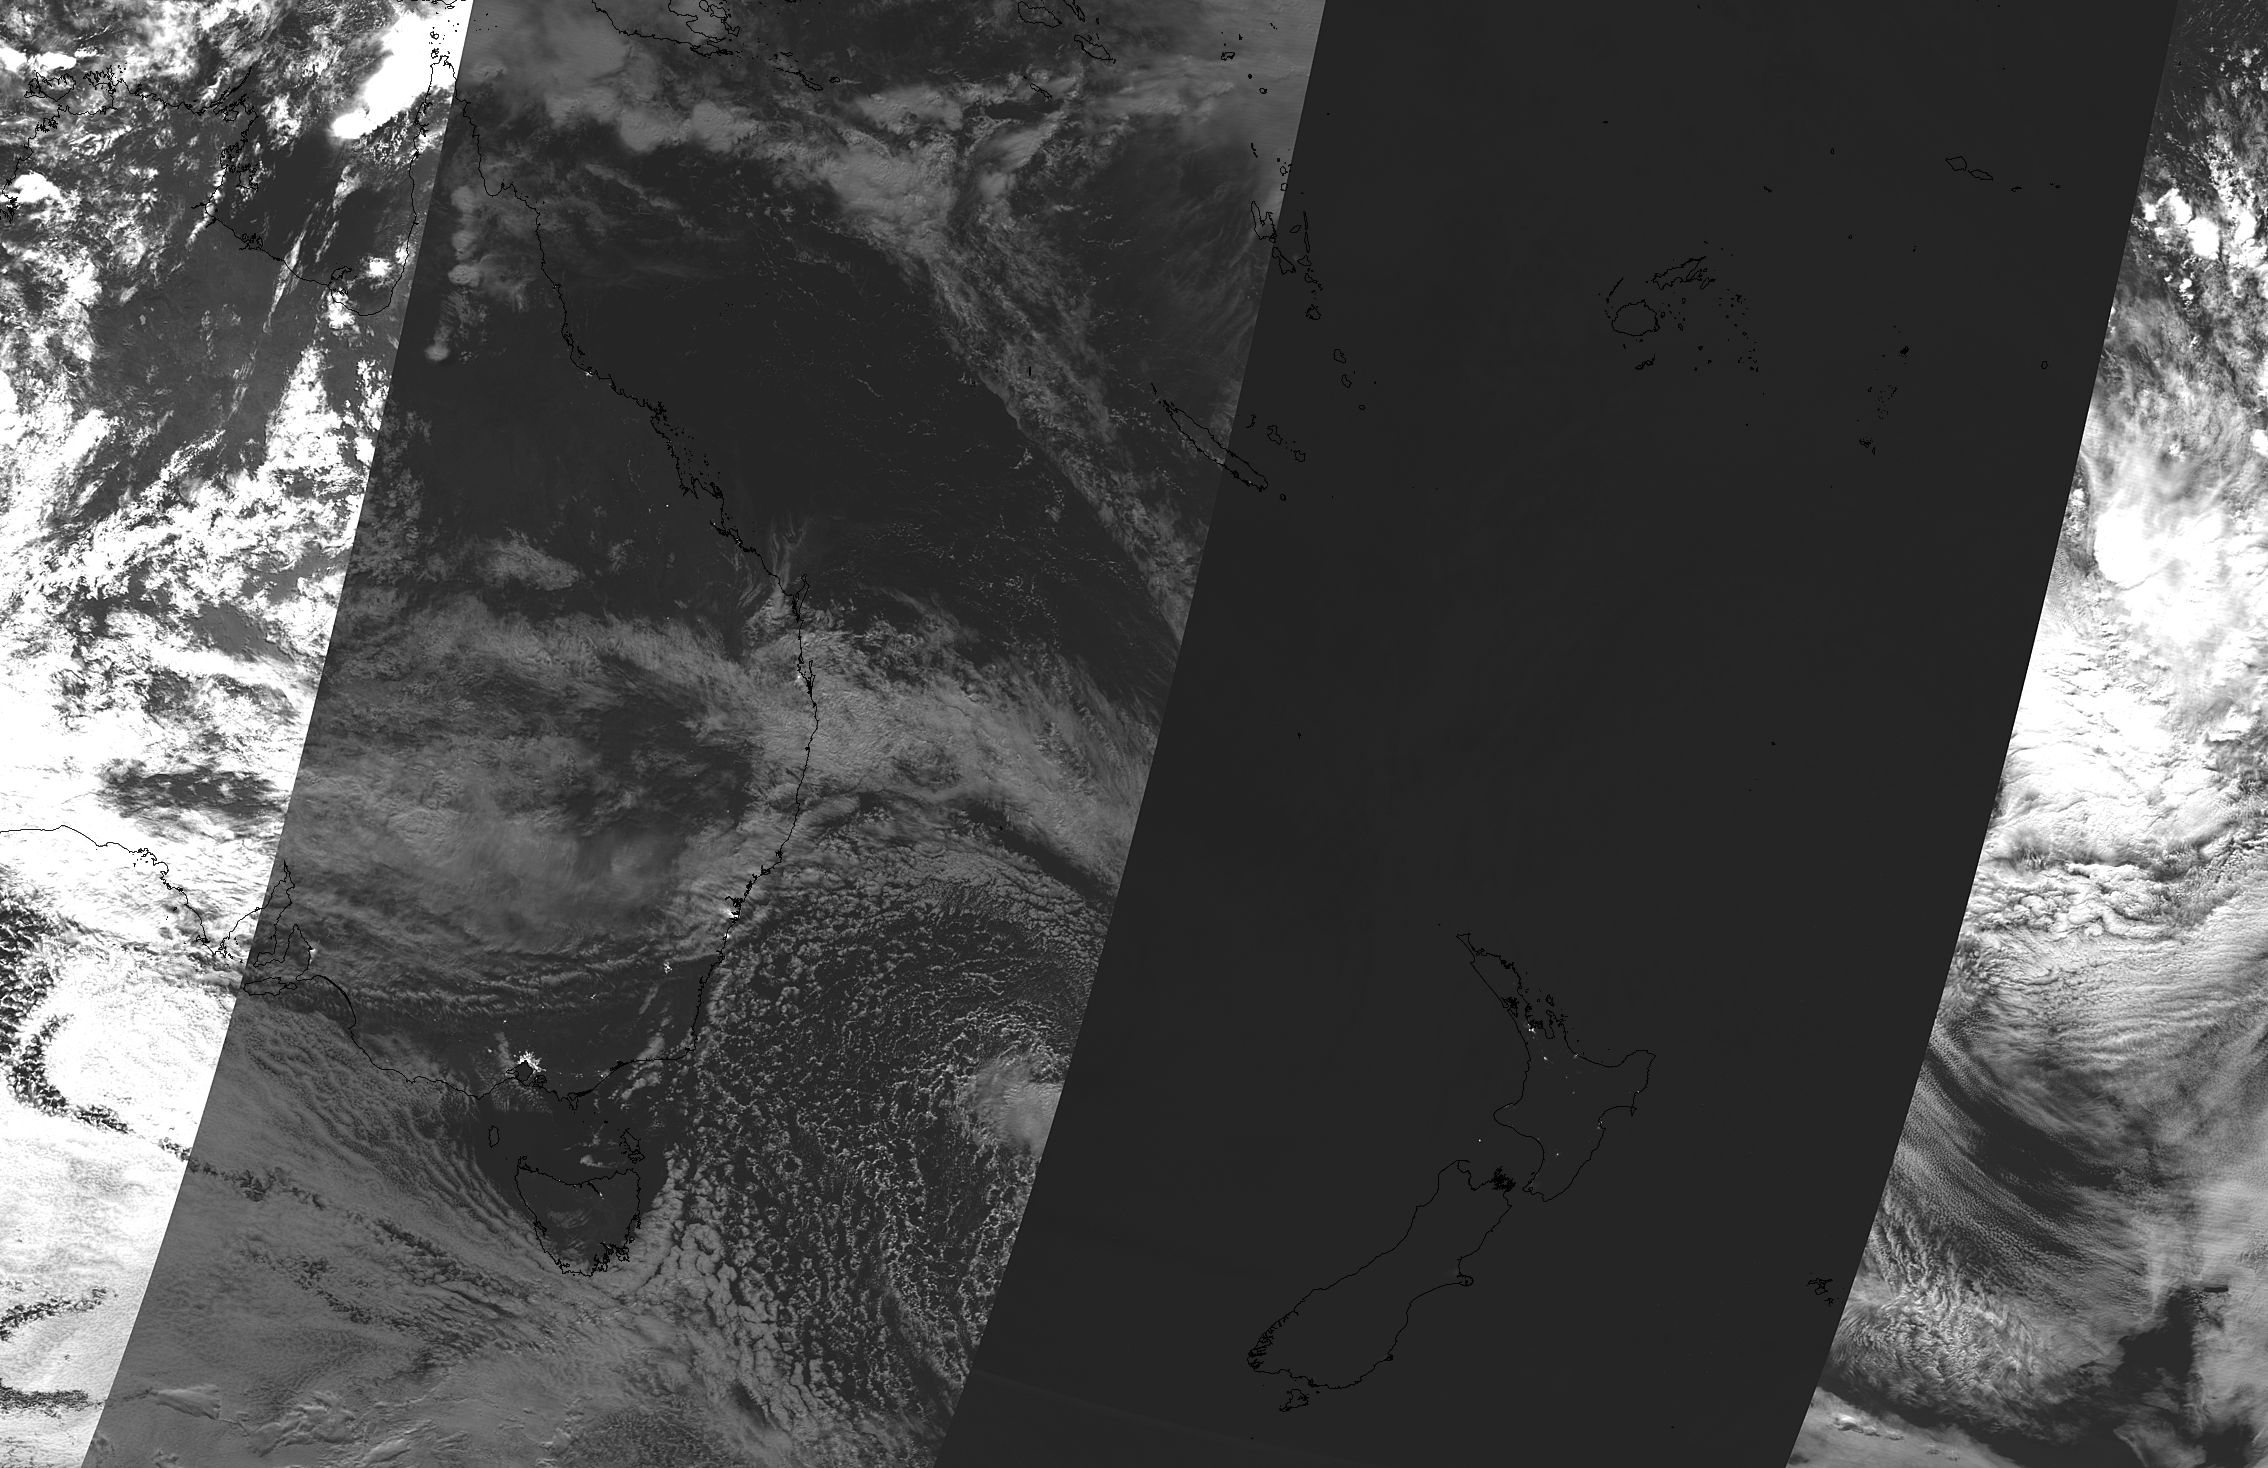 Lunar eclipse over Australia and New Zealand (Day/Night Band) - related image preview